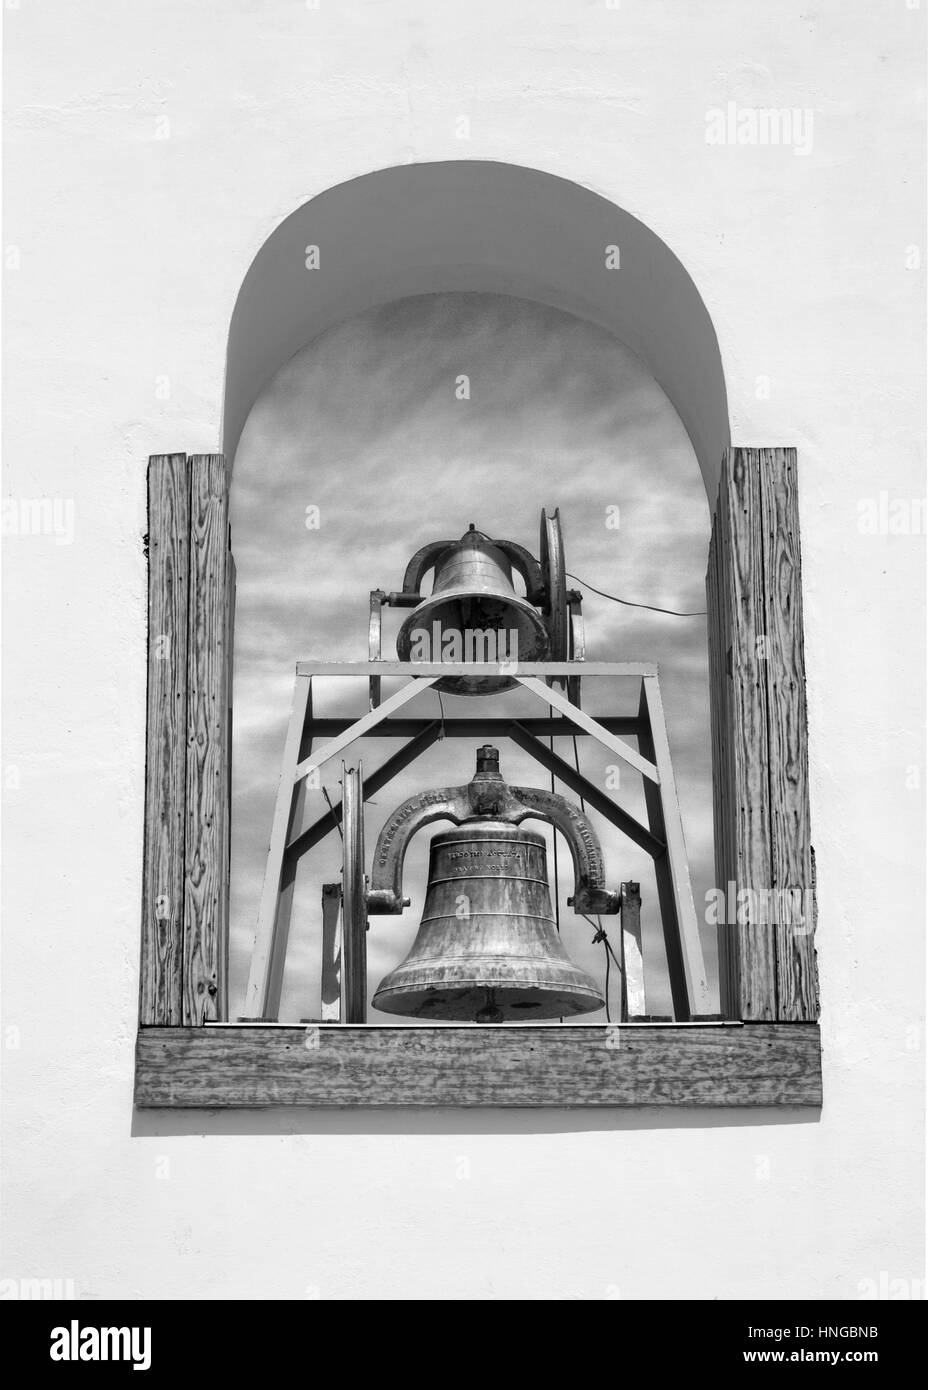 The bells of the Spanish Mission bell tower in Texas. - Stock Image